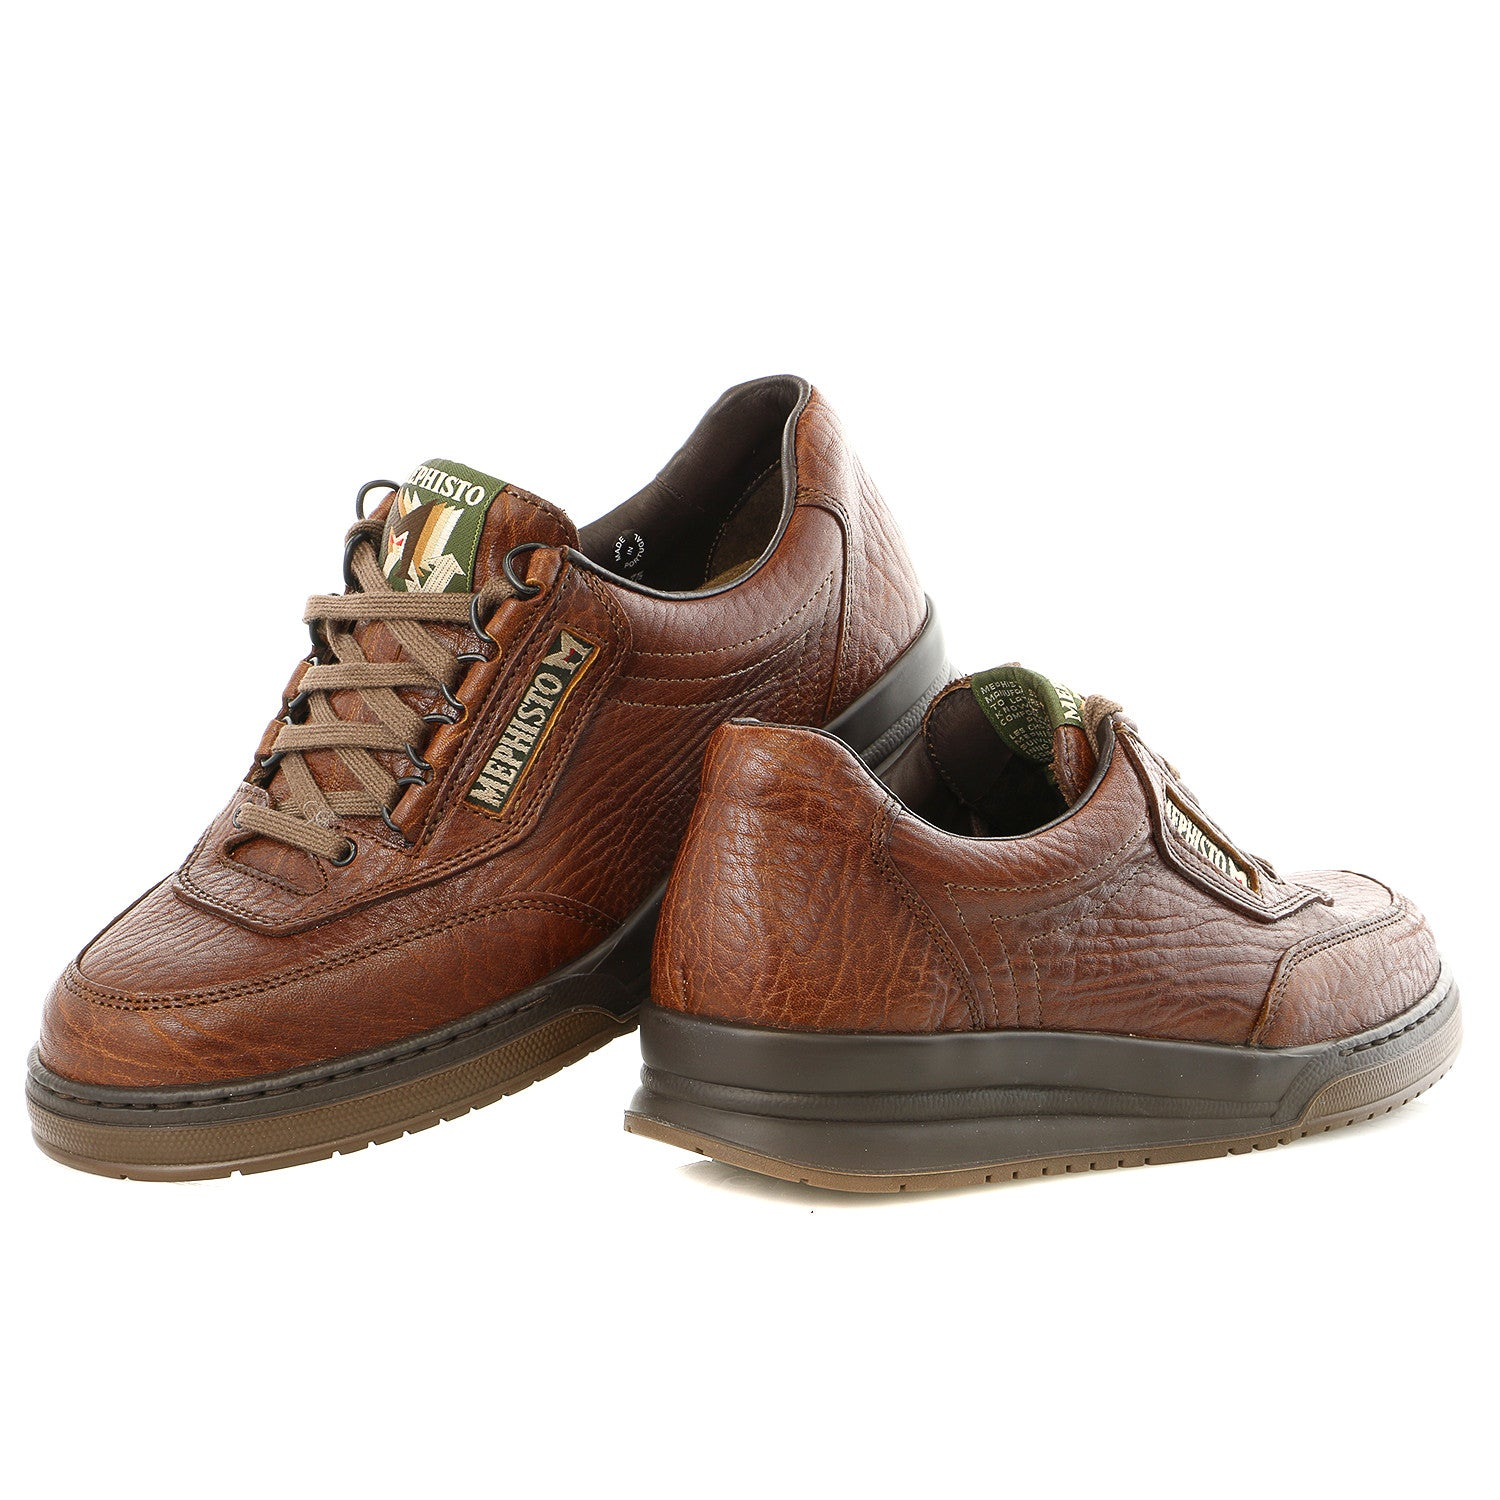 08e79cde01 Mephisto Match Walking Shoe - Men's - Shoplifestyle